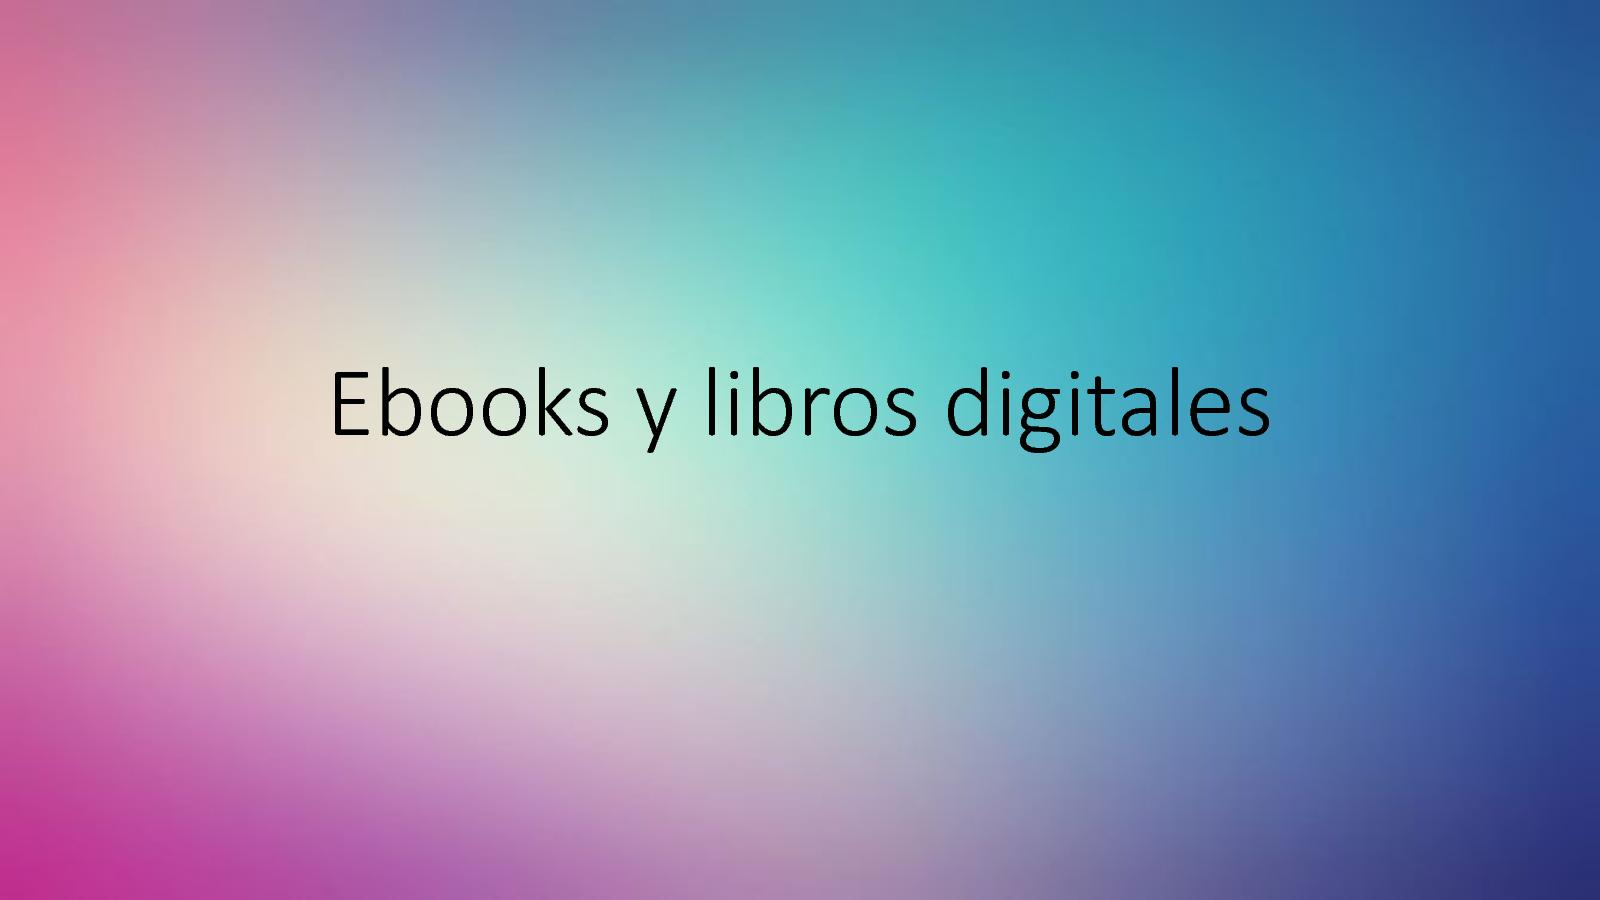 Descarga De Libros Electronicos Calaméo Ebooks Y Libros Digitales